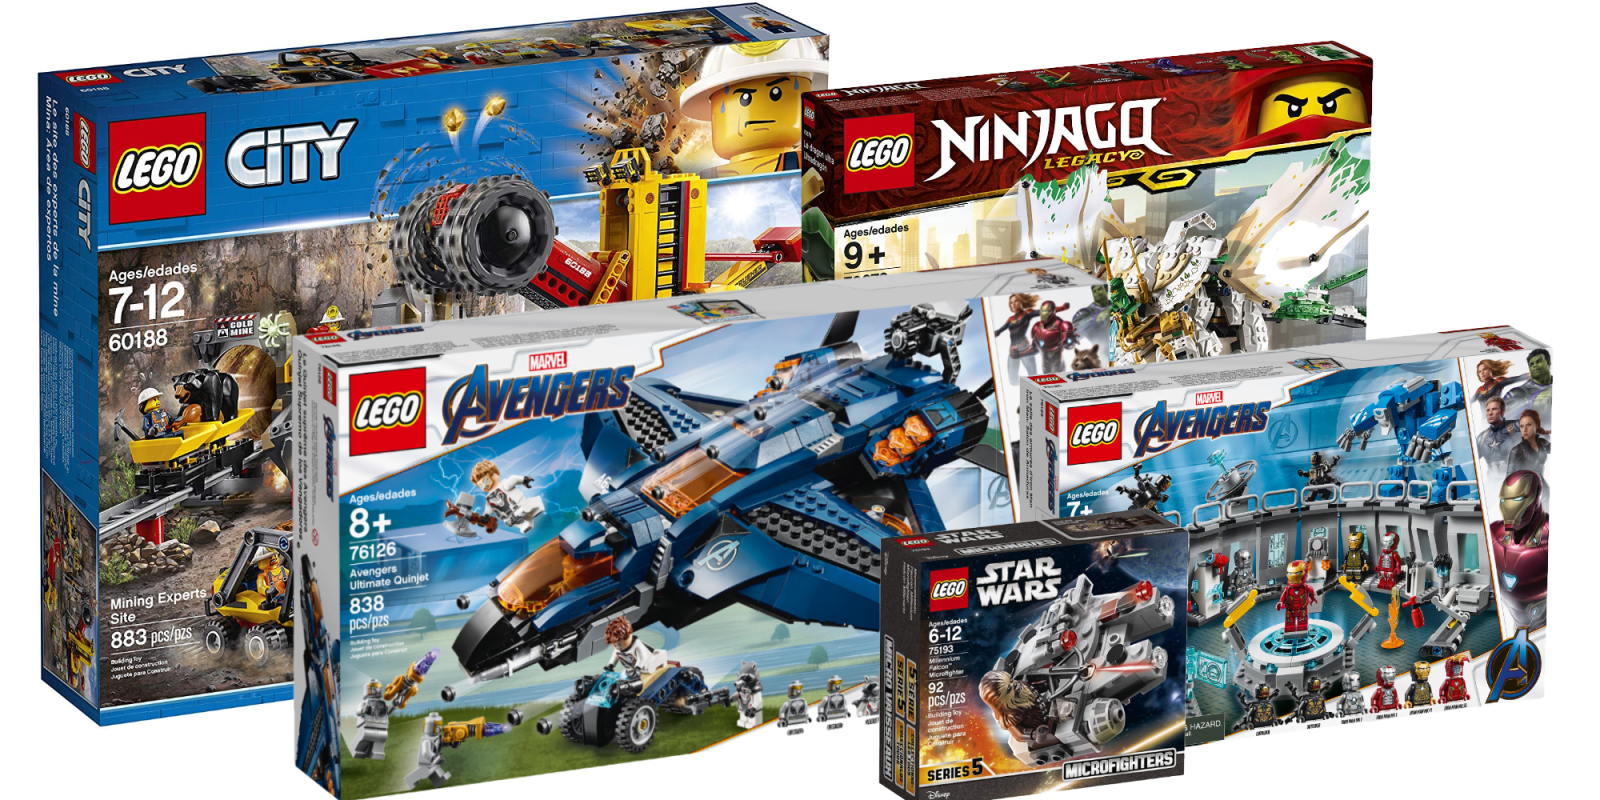 Save 20% on three new Avengers: Endgame LEGO kits from $28 ...